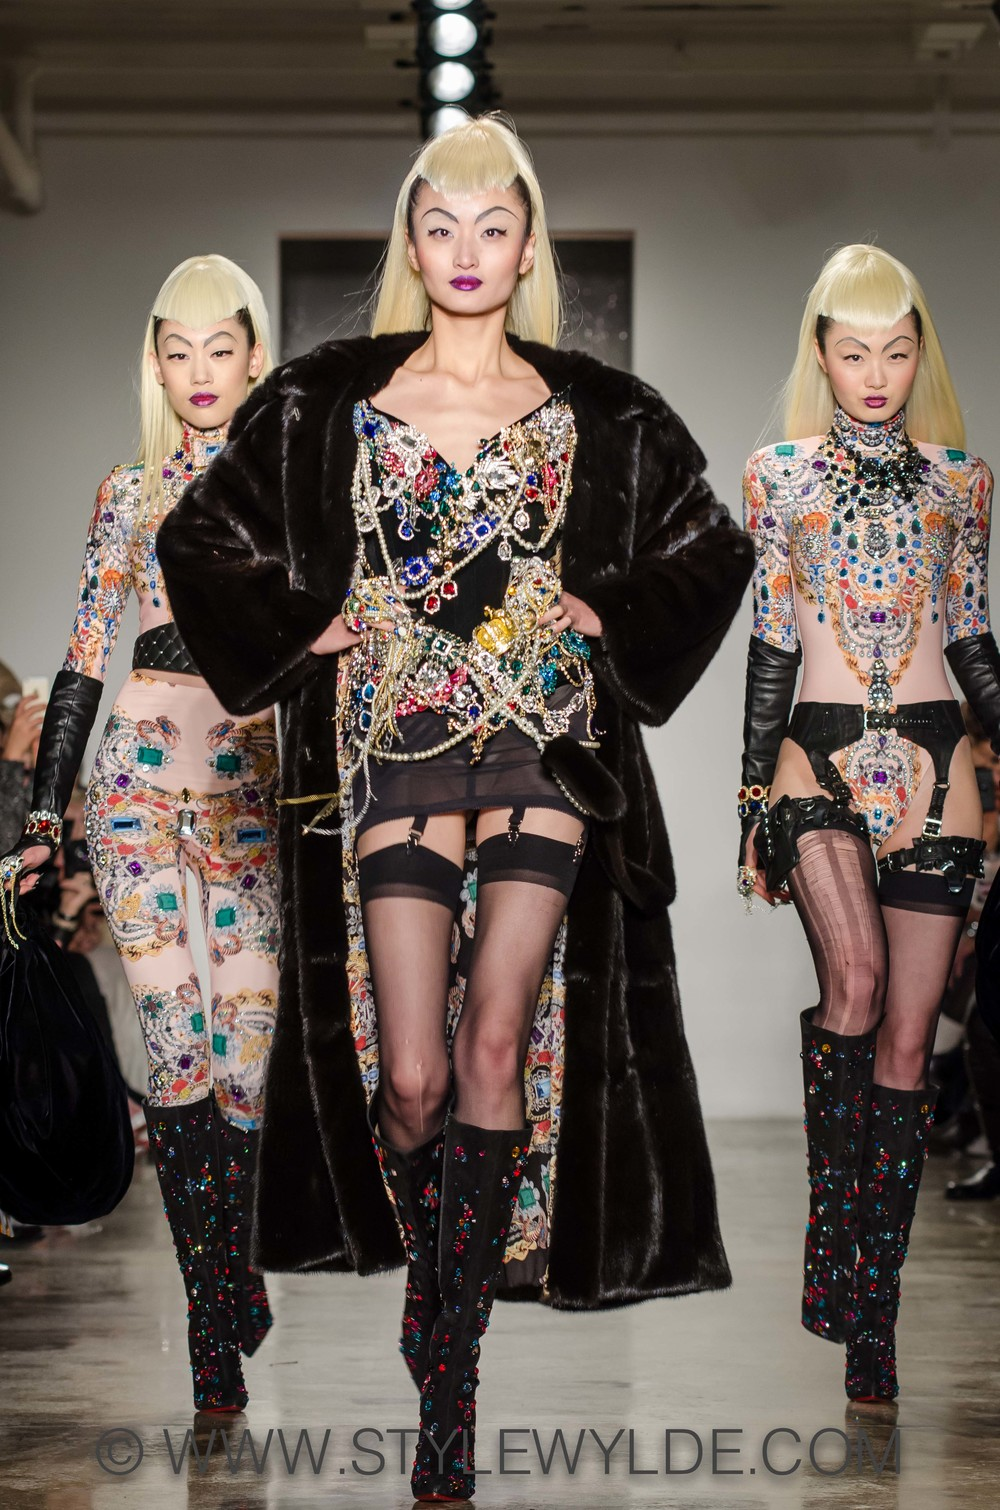 Stylewylde_Blonds_FW2014_FOH_CA (9 of 16).jpg